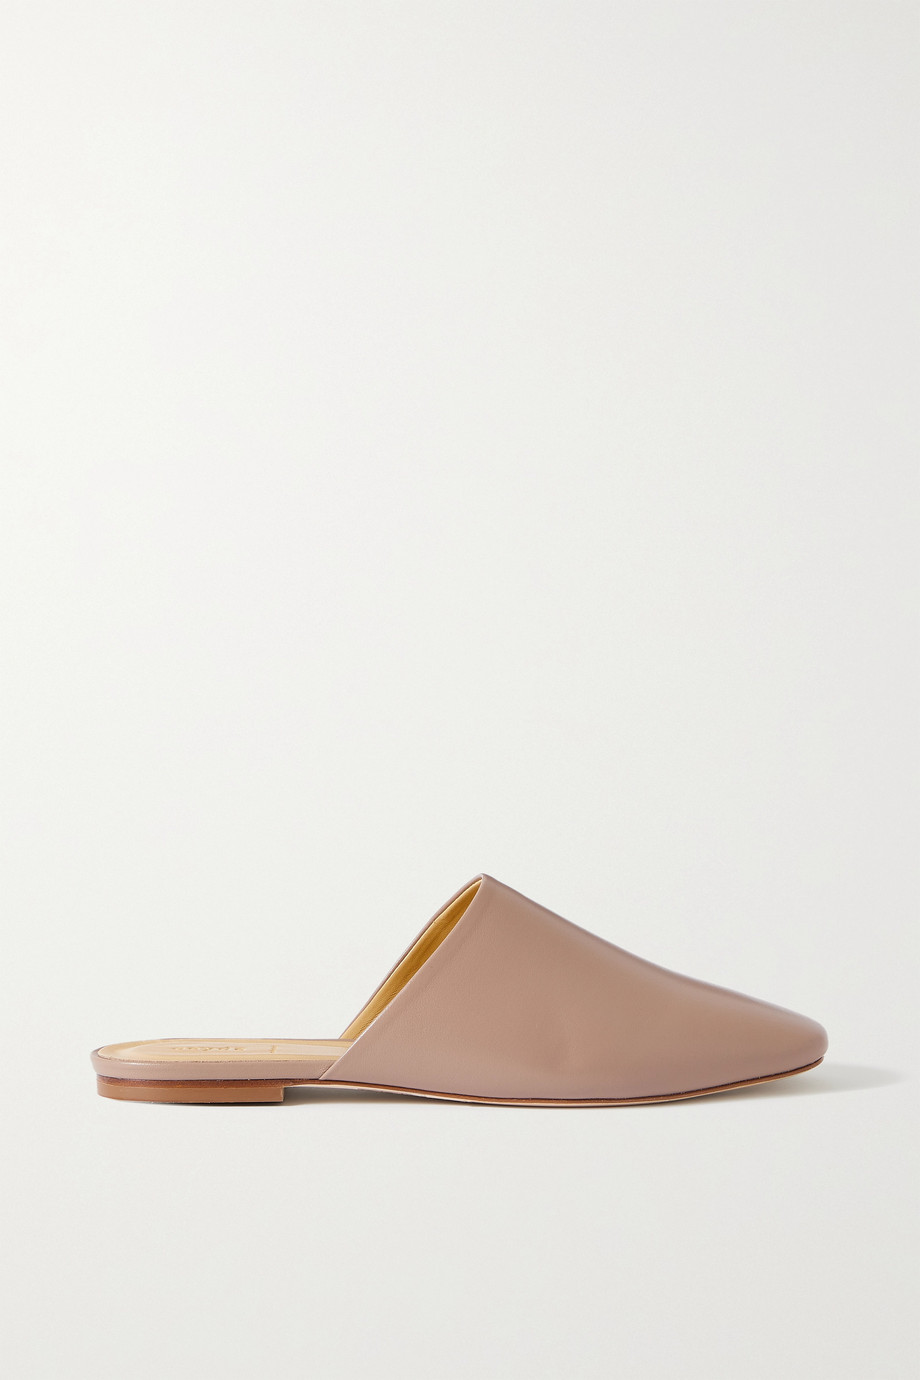 aeyde Kelly leather slippers